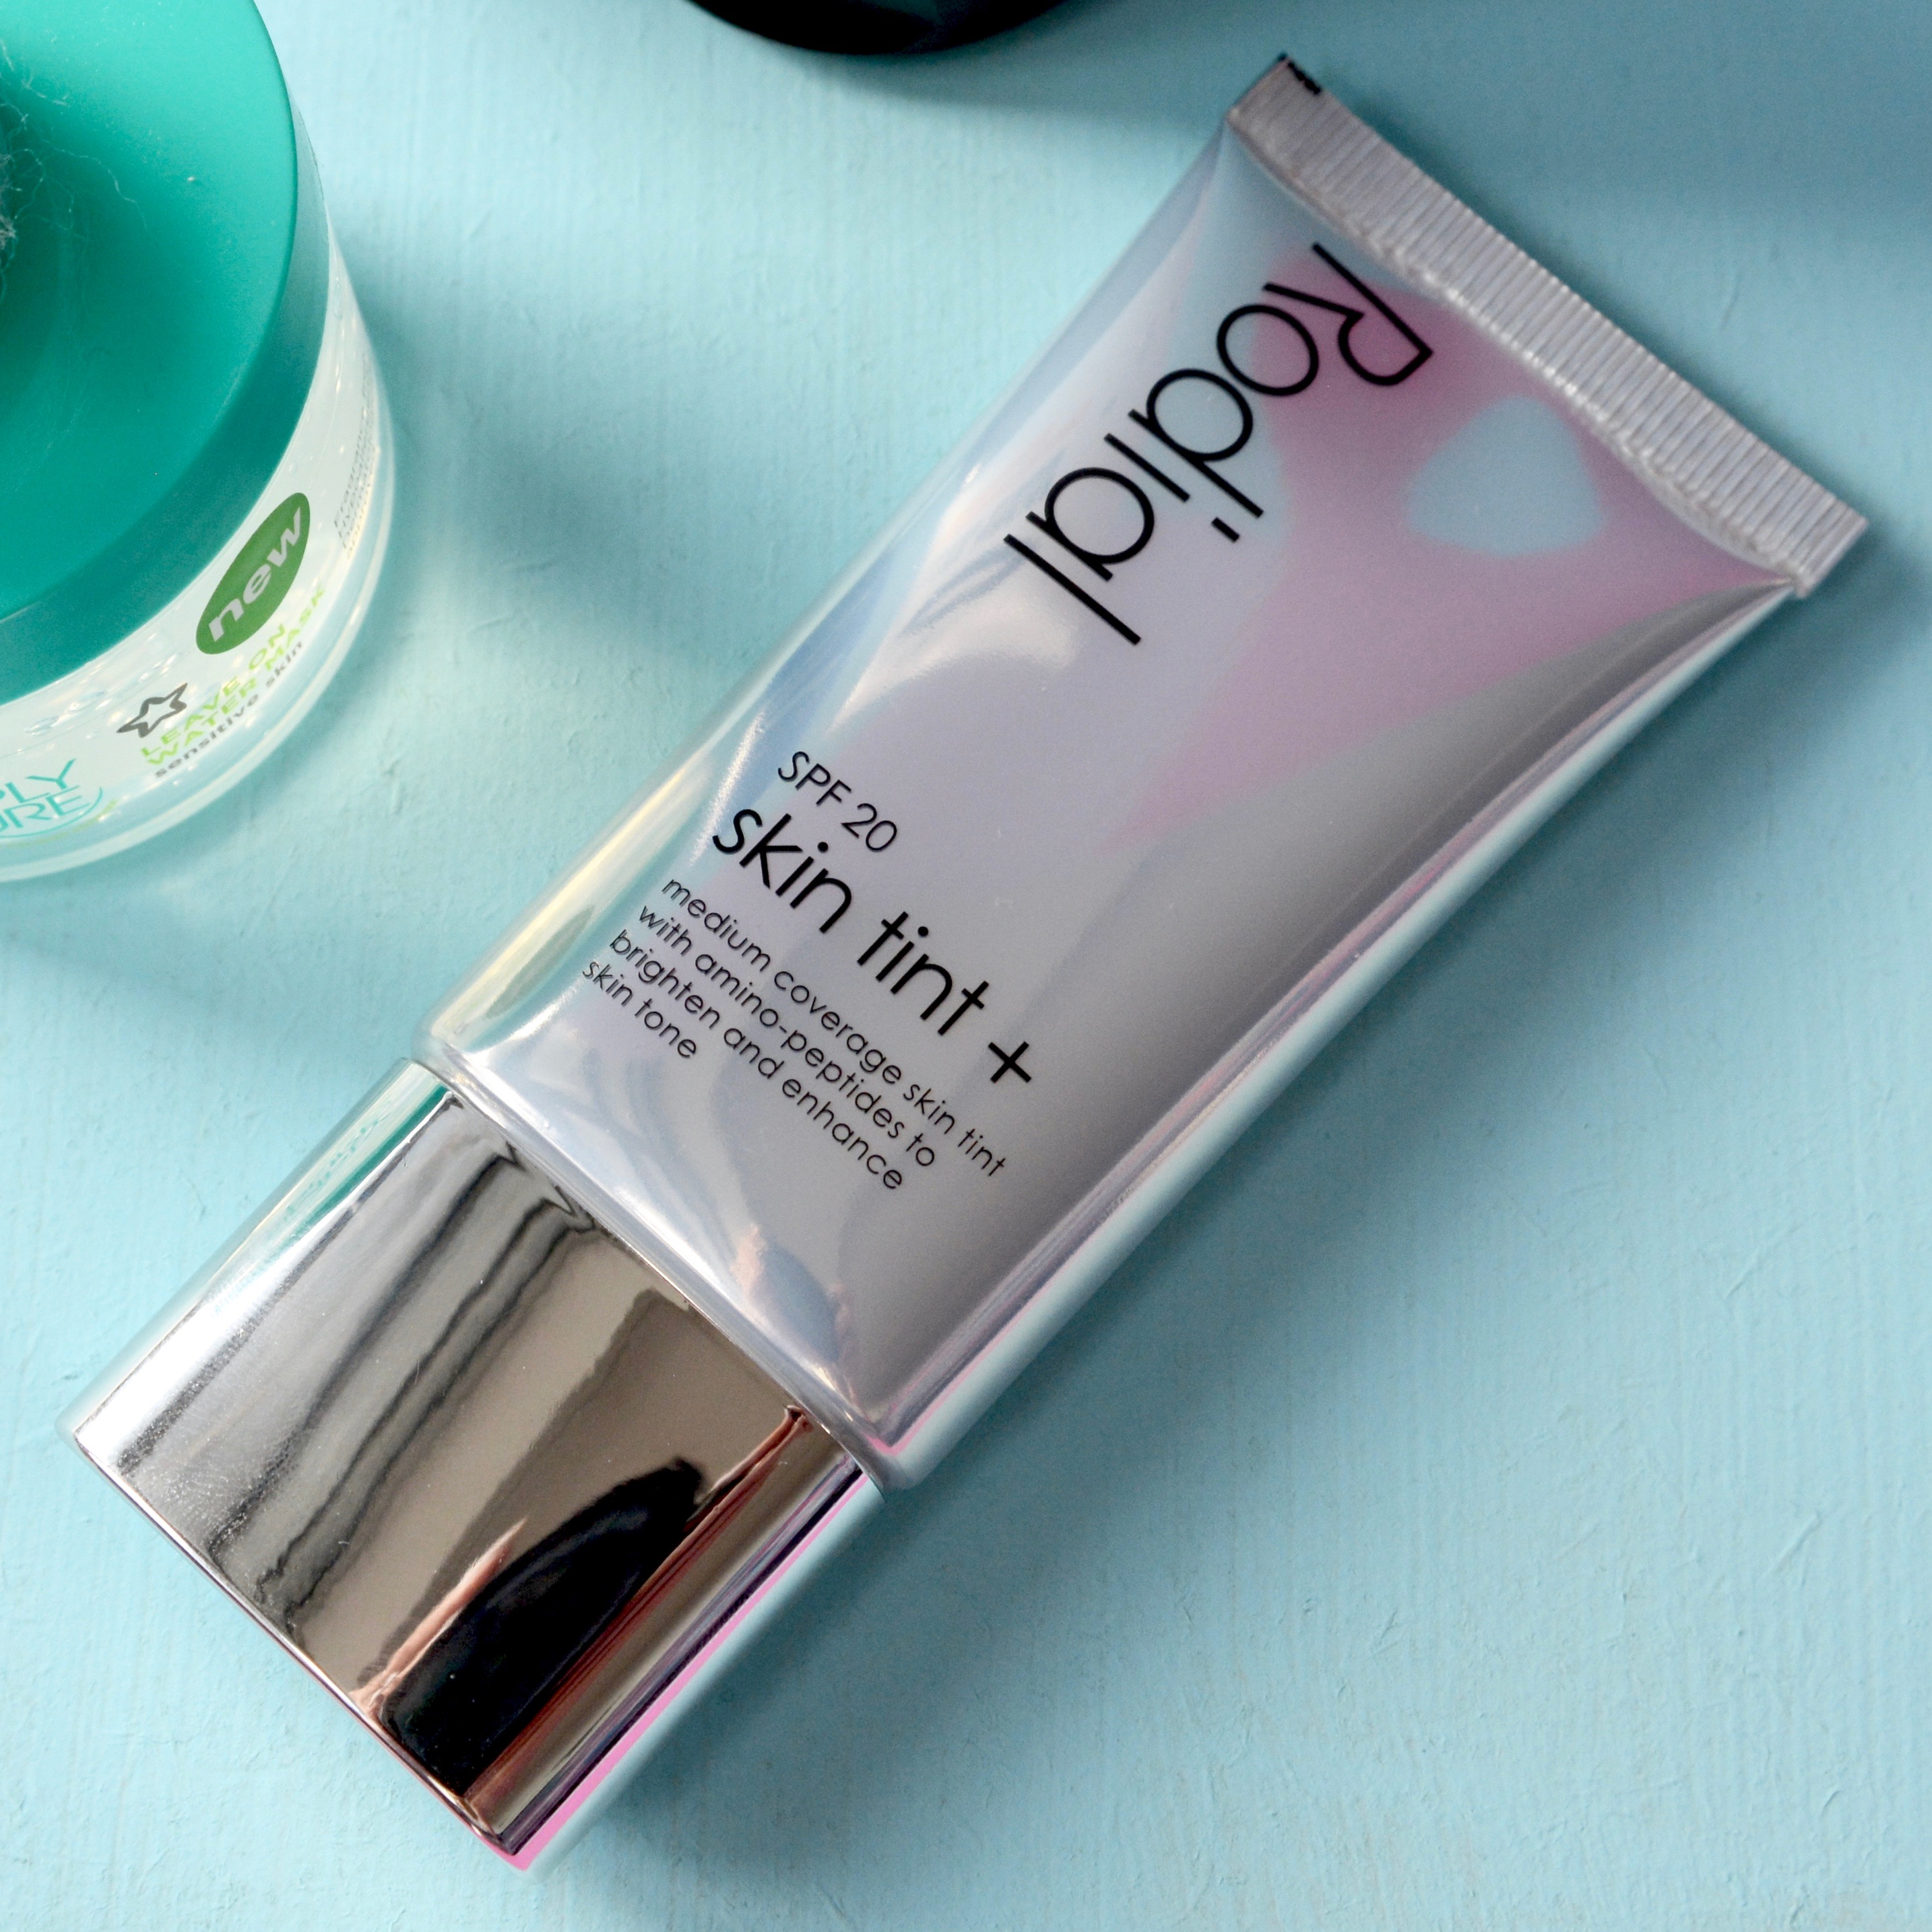 Friday Faves: Rodial Skin Tint